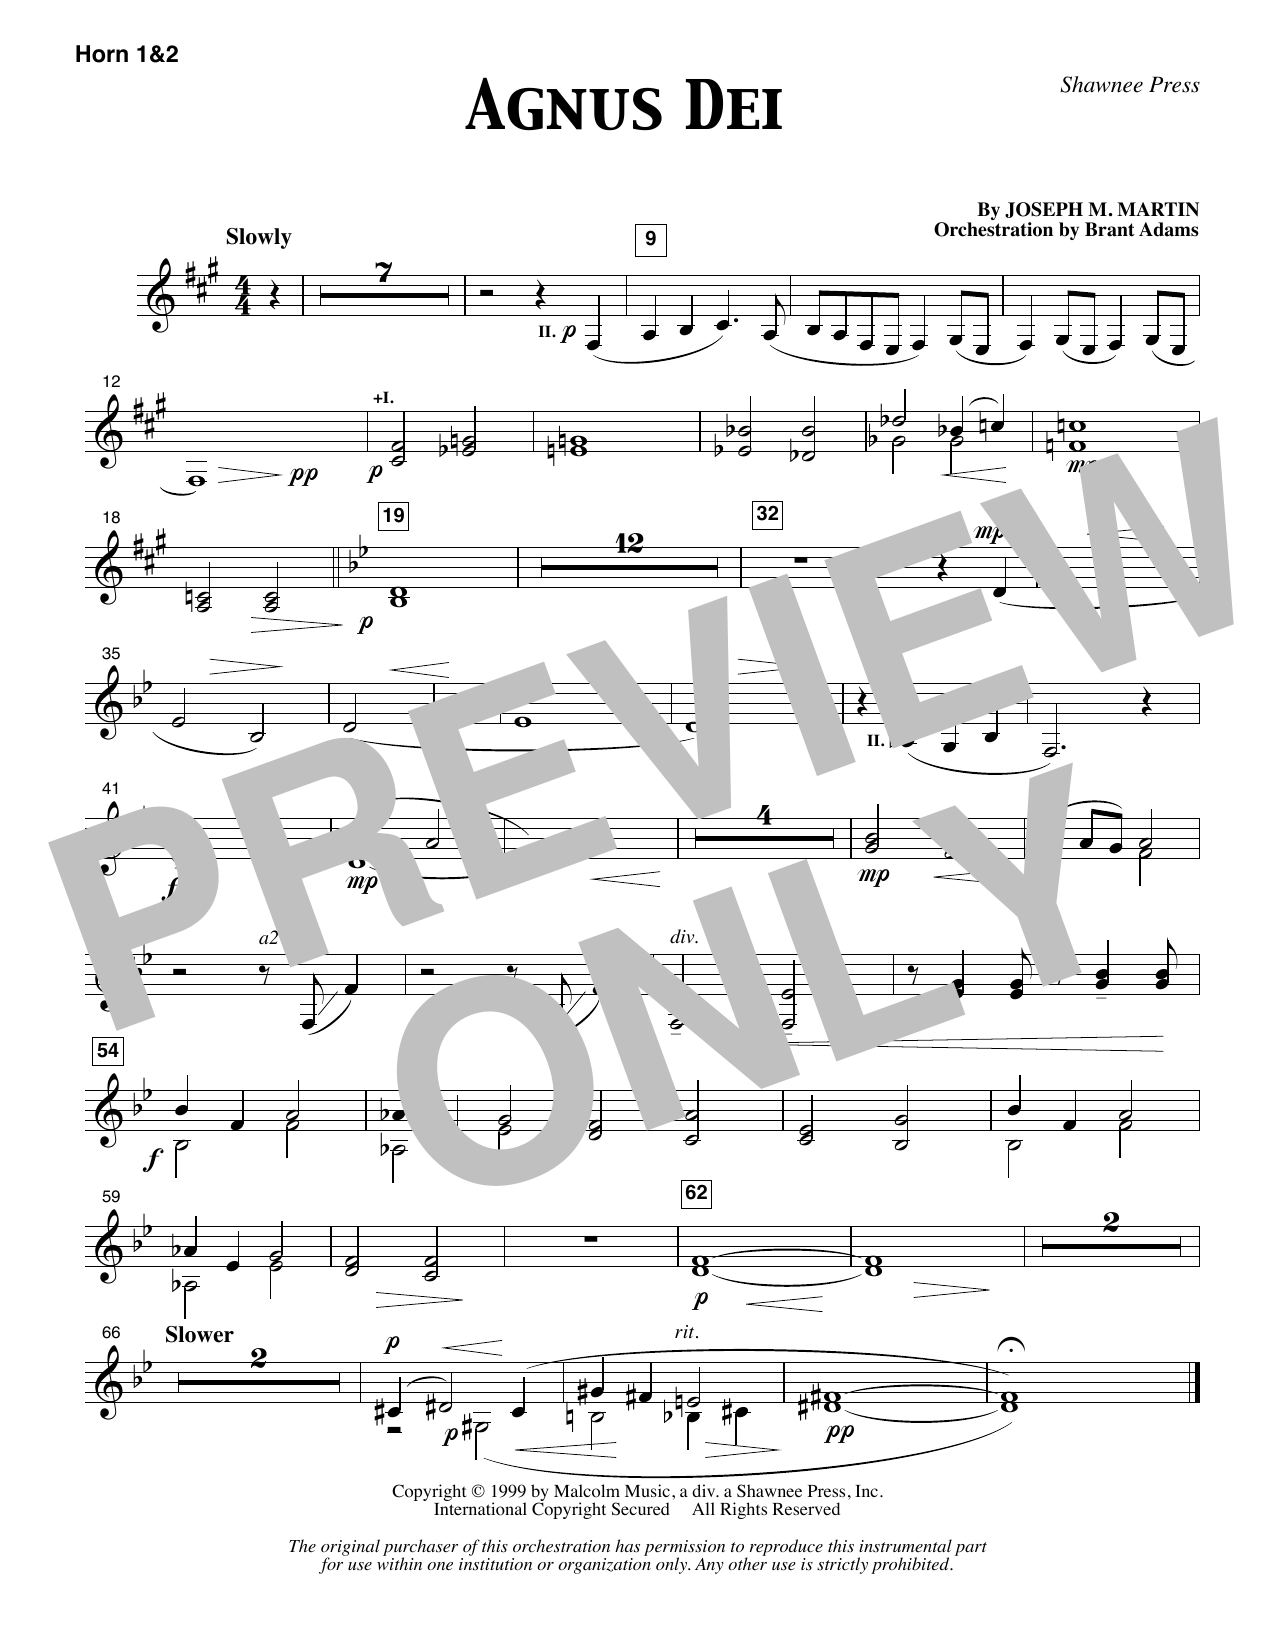 Joseph M. Martin Agnus Dei - F Horn 1 & 2 sheet music notes and chords. Download Printable PDF.